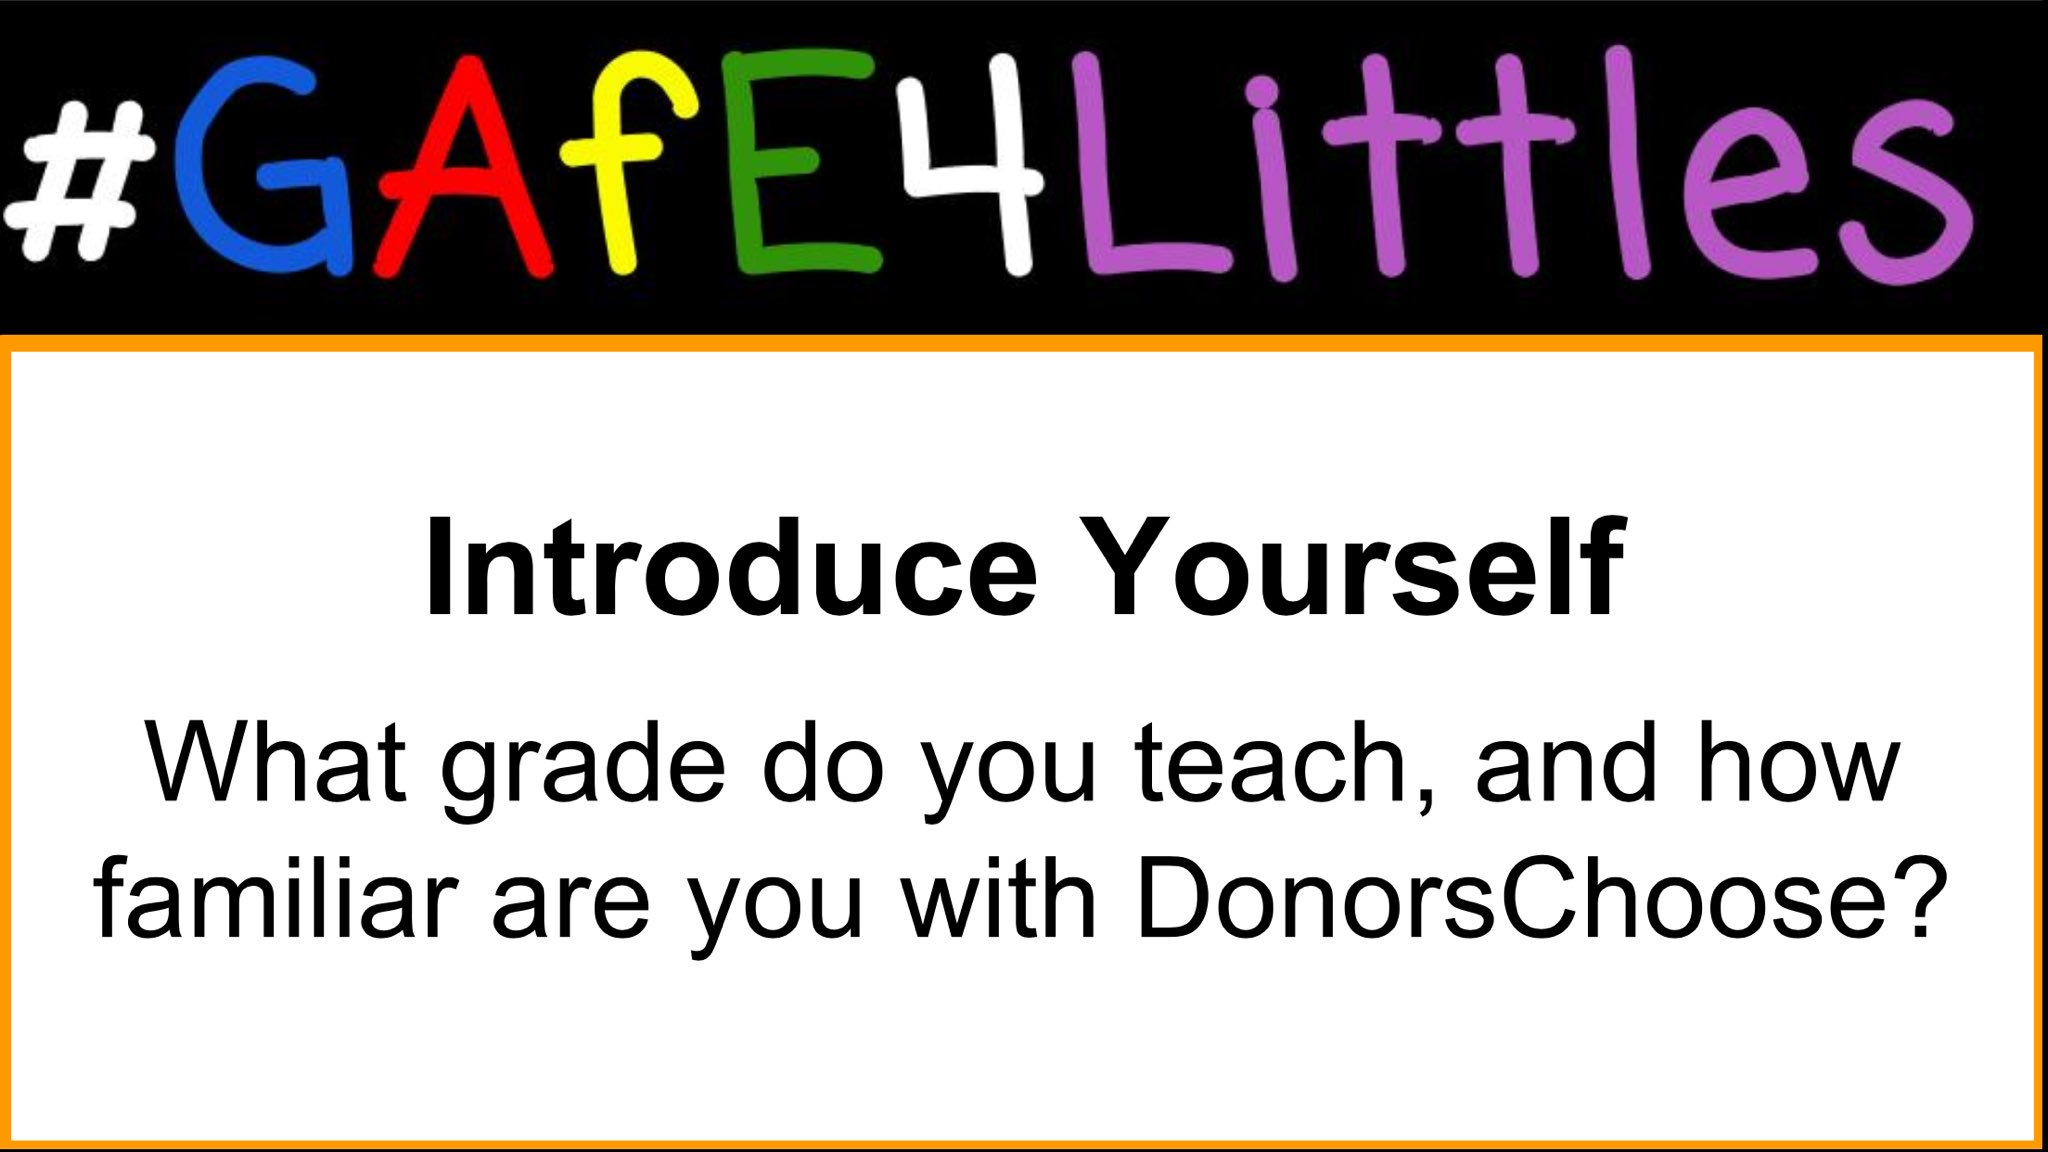 Welcome to #gafe4littles chat on.  #DonorsChoose. Introduce yourself, grade you teach, and how familiar you are with @DonorsChoose? https://t.co/22rVItE5YK